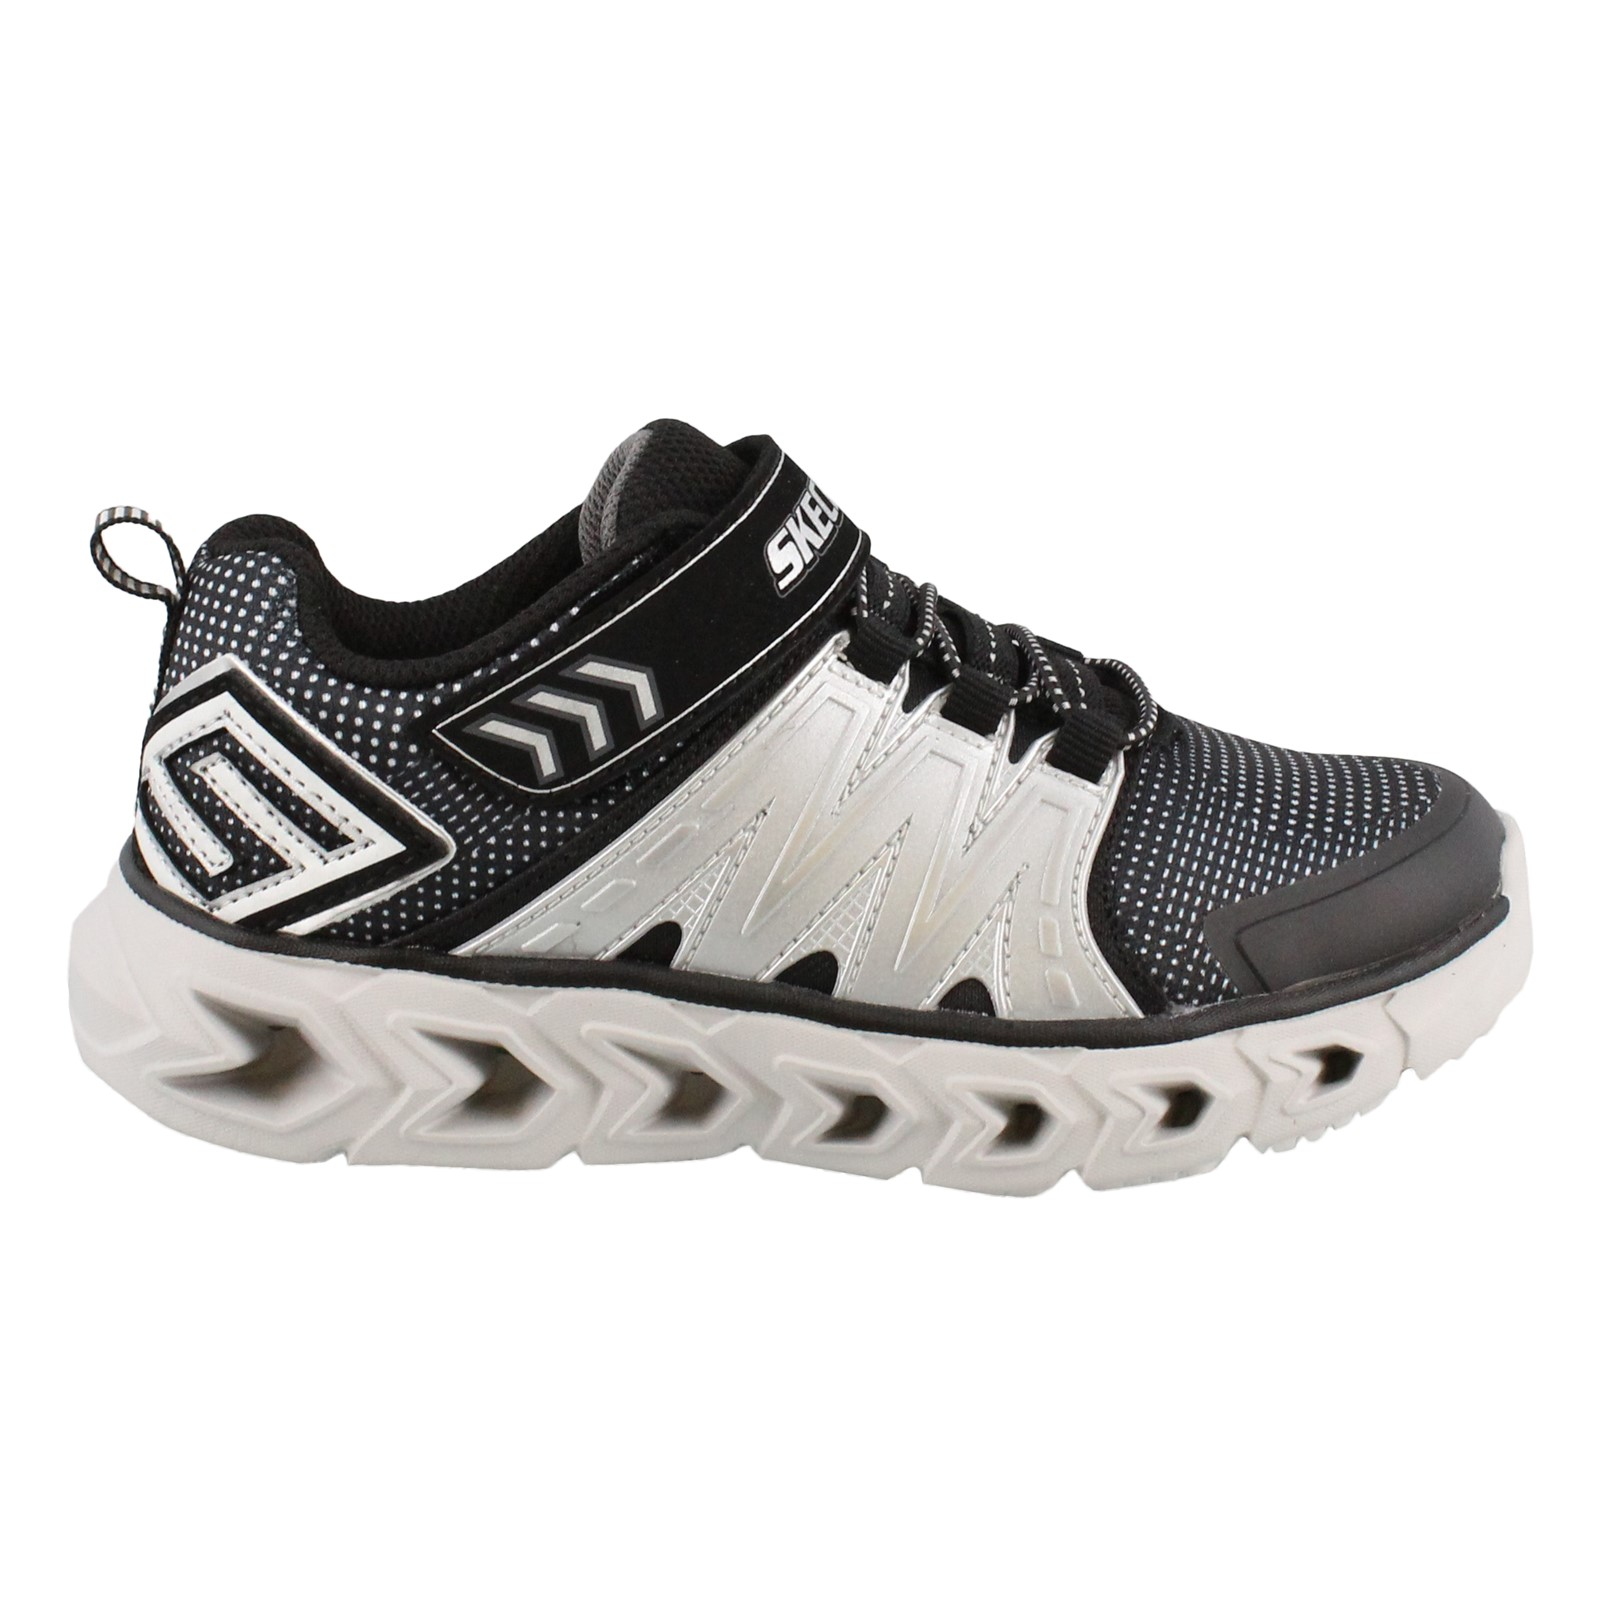 Boy's Skechers, Hypno Flash 2.0 Light up Sneakers